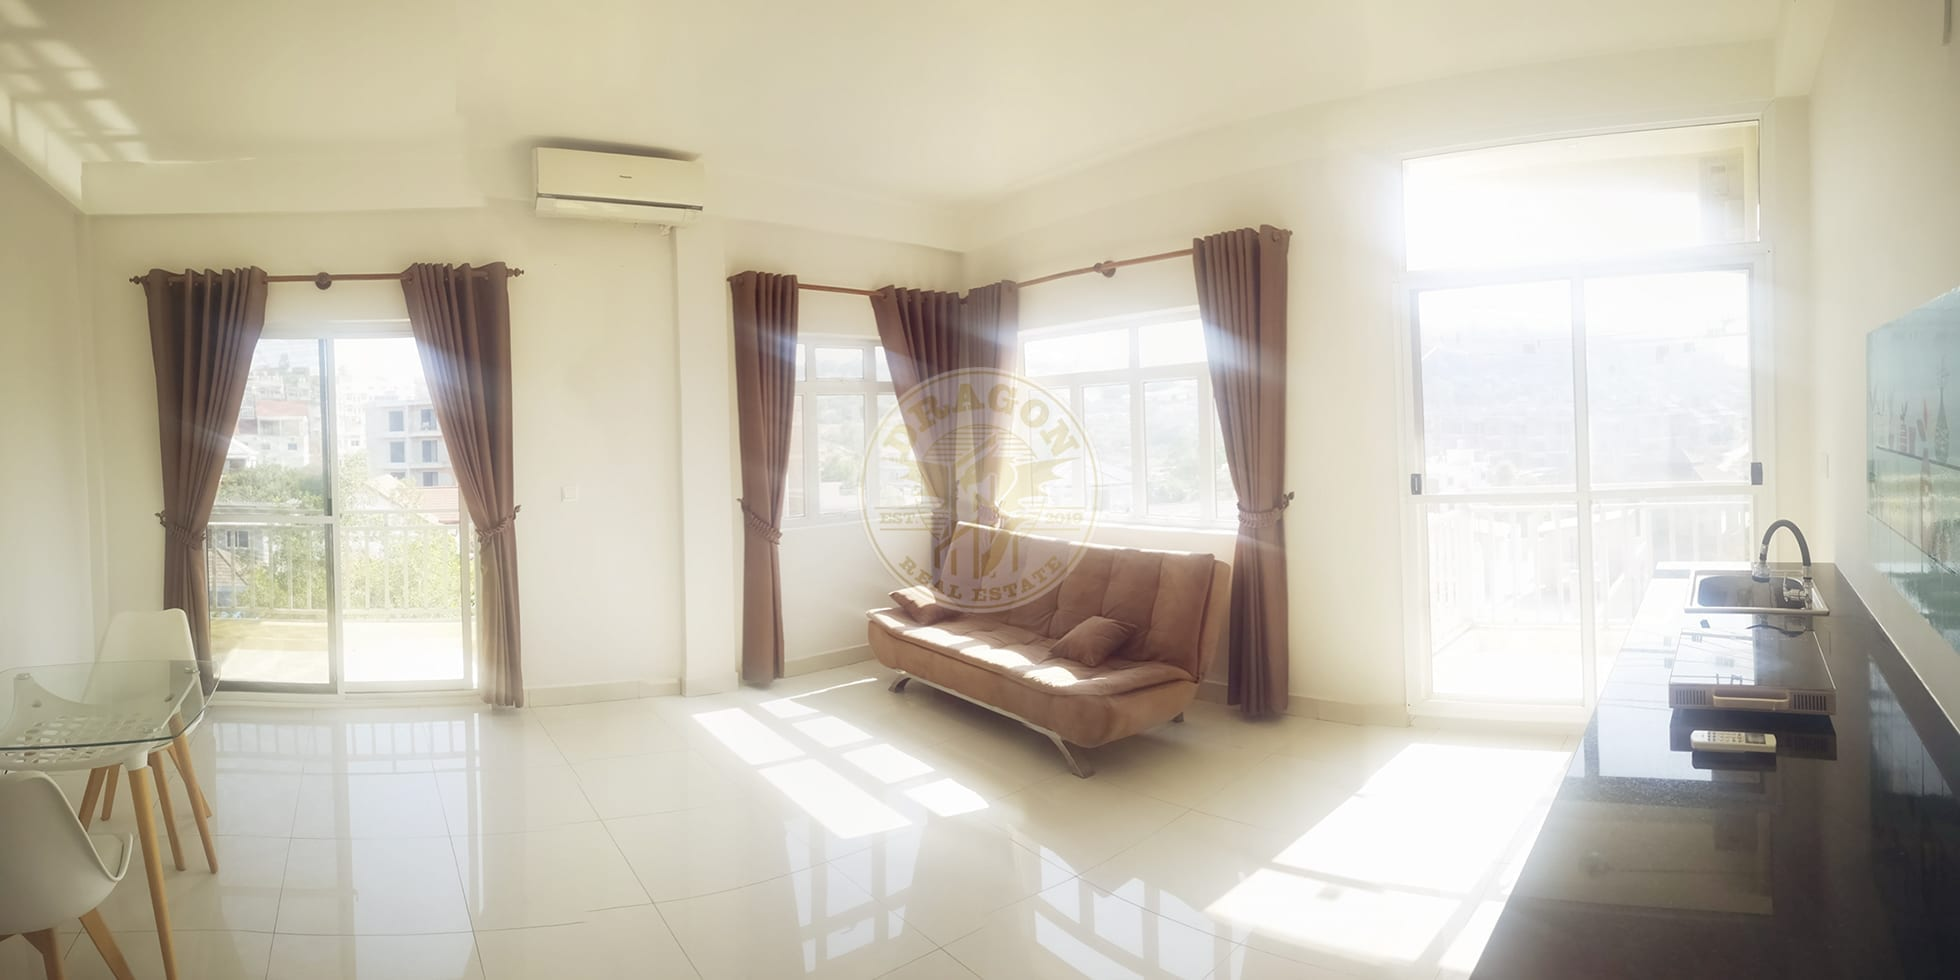 Apartment w/ Two balconies for Rent. Sihanoukville Monthly Rental